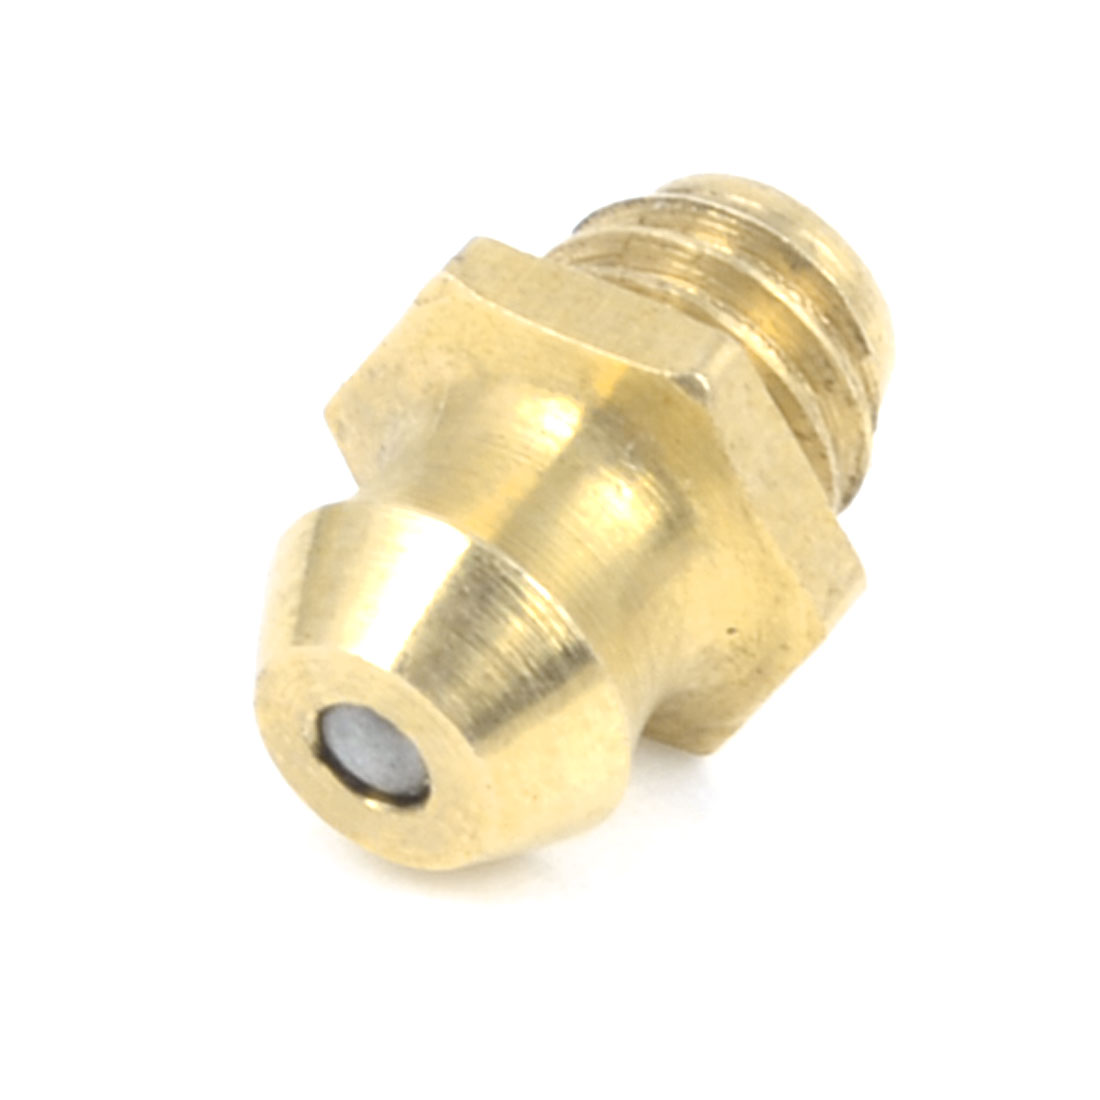 "7/32"" Male Thread Pneumatic Air Quick Coupler Compression Fitting"